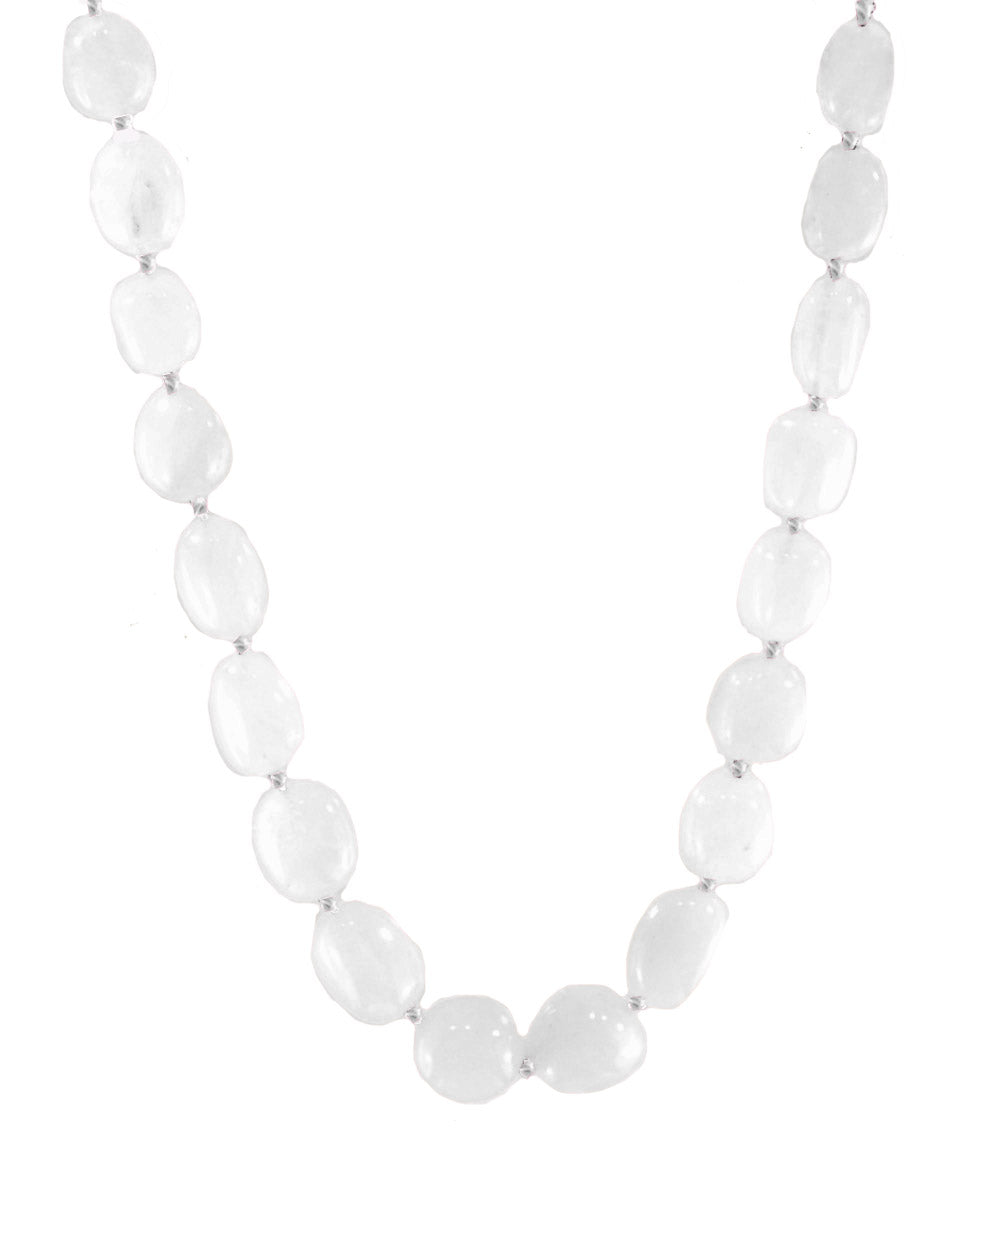 Natural Large White Crystal Quartz Necklace